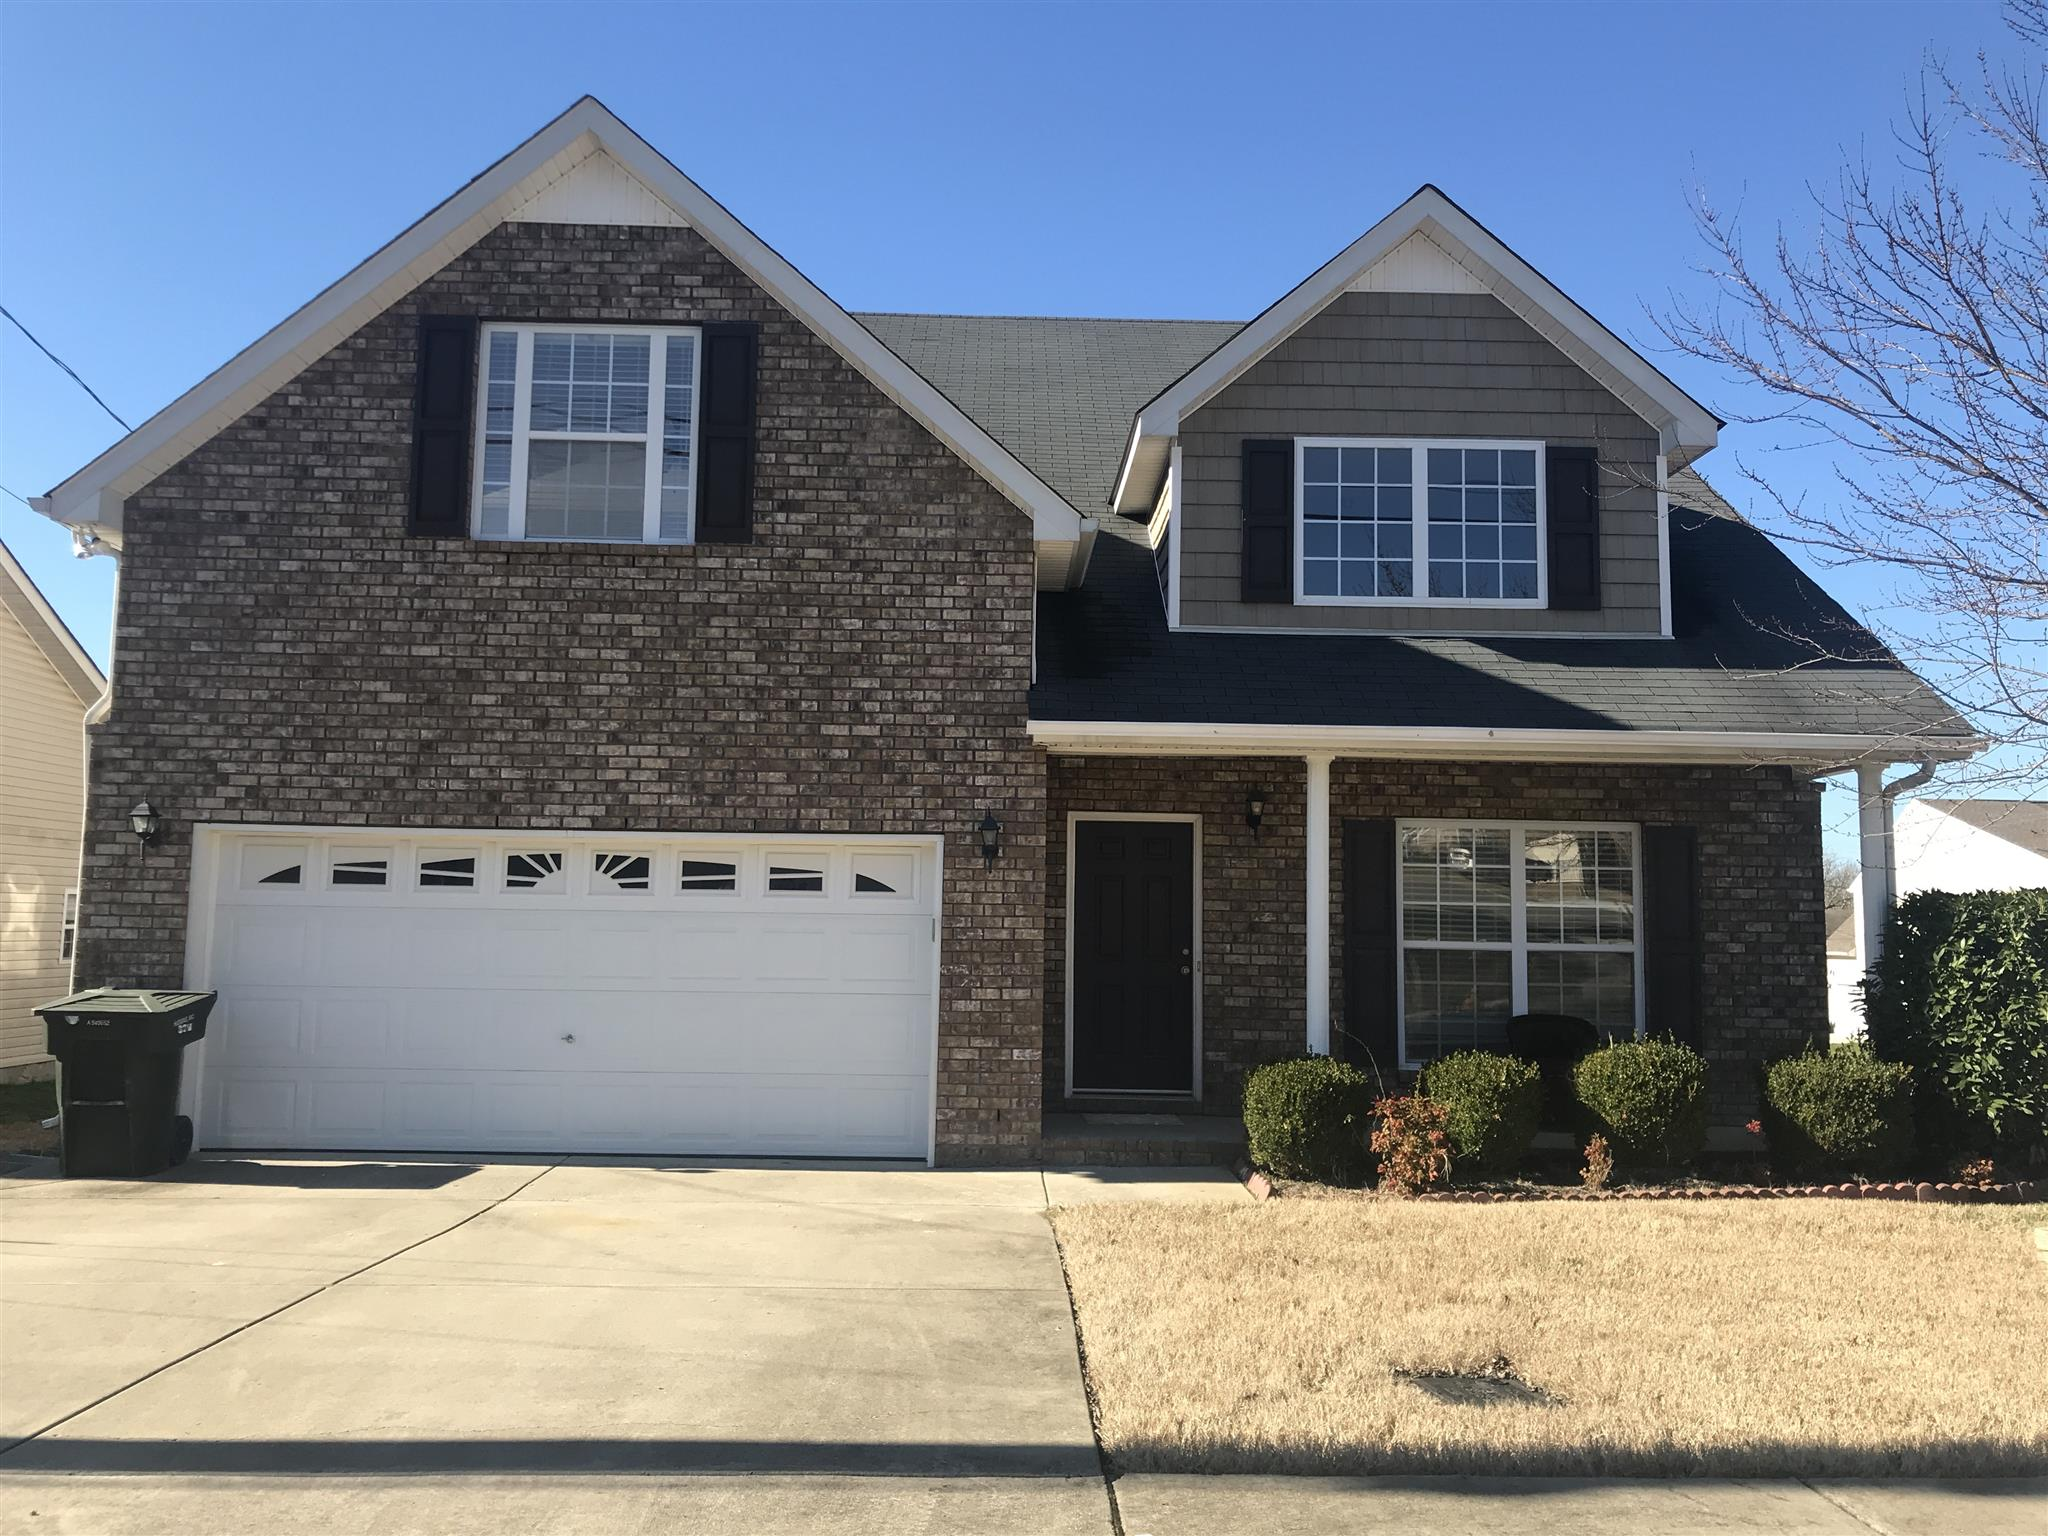 1421 Ohara Dr, Nashville-Antioch in Davidson County County, TN 37013 Home for Sale